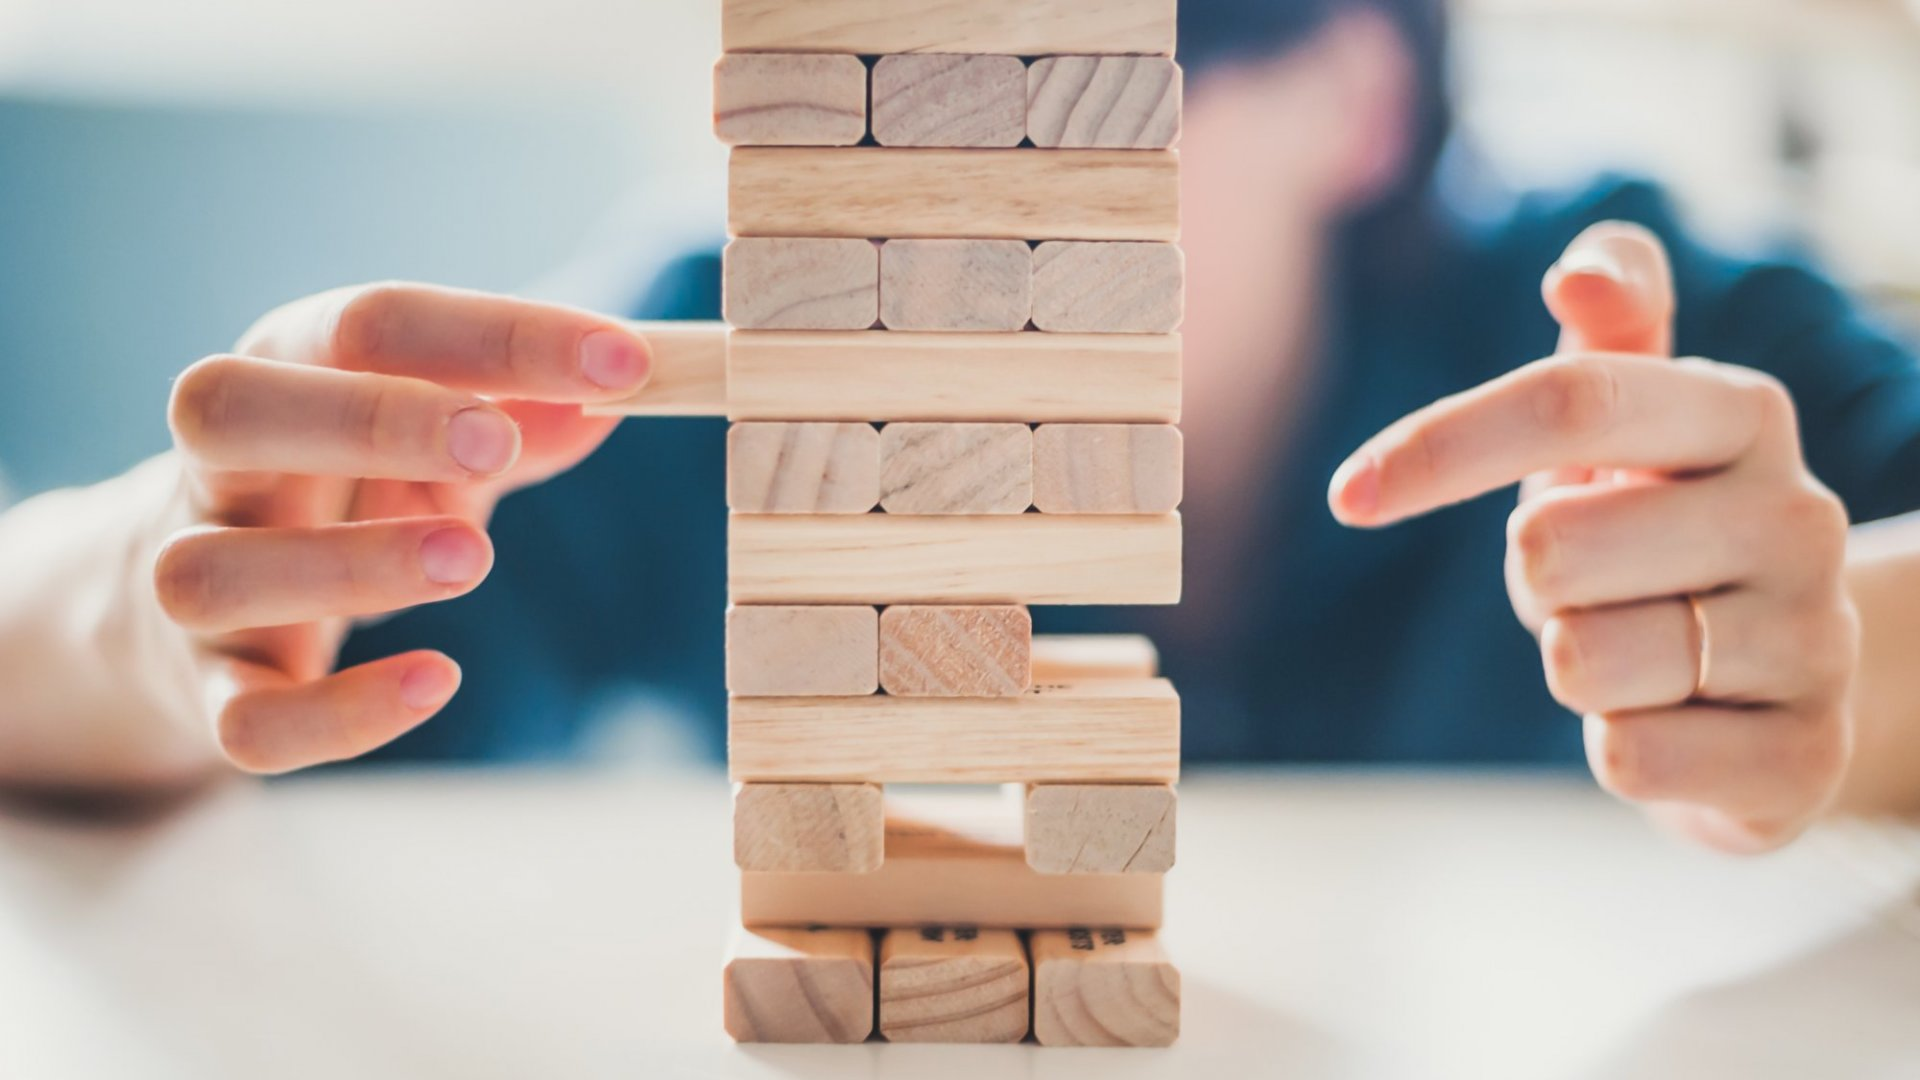 7 Building Blocks of Effective and Creative Teamwork